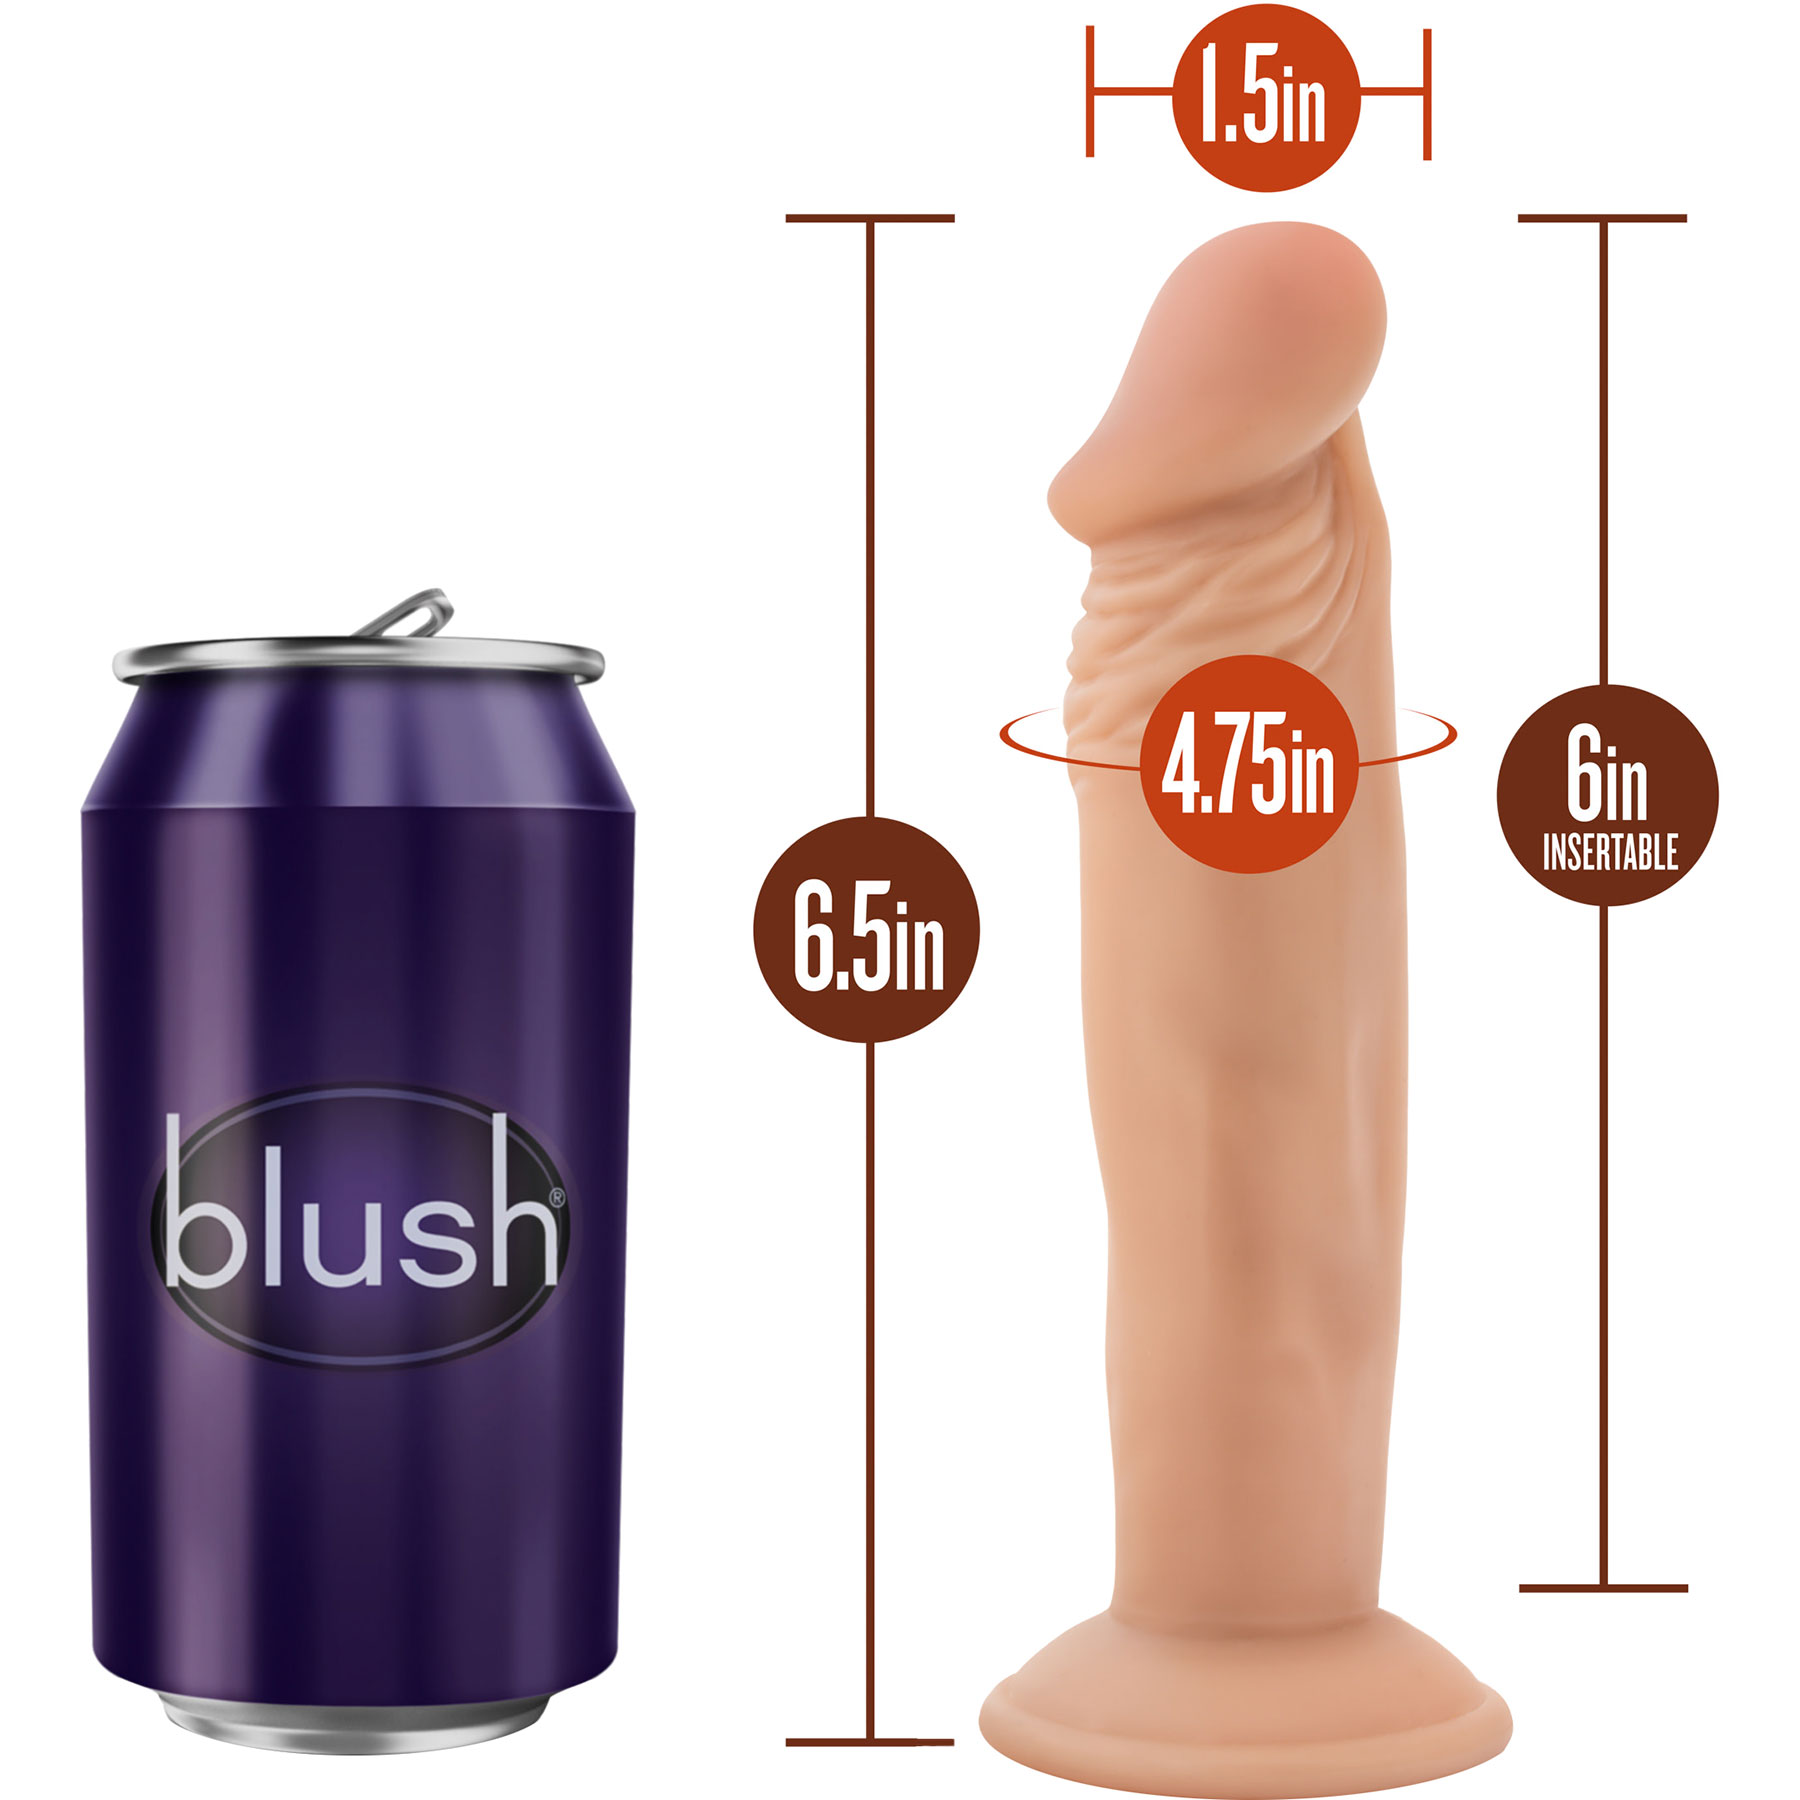 Dr. Skin Dr. Small Realistic Dildo With Suction Cup - Measurements